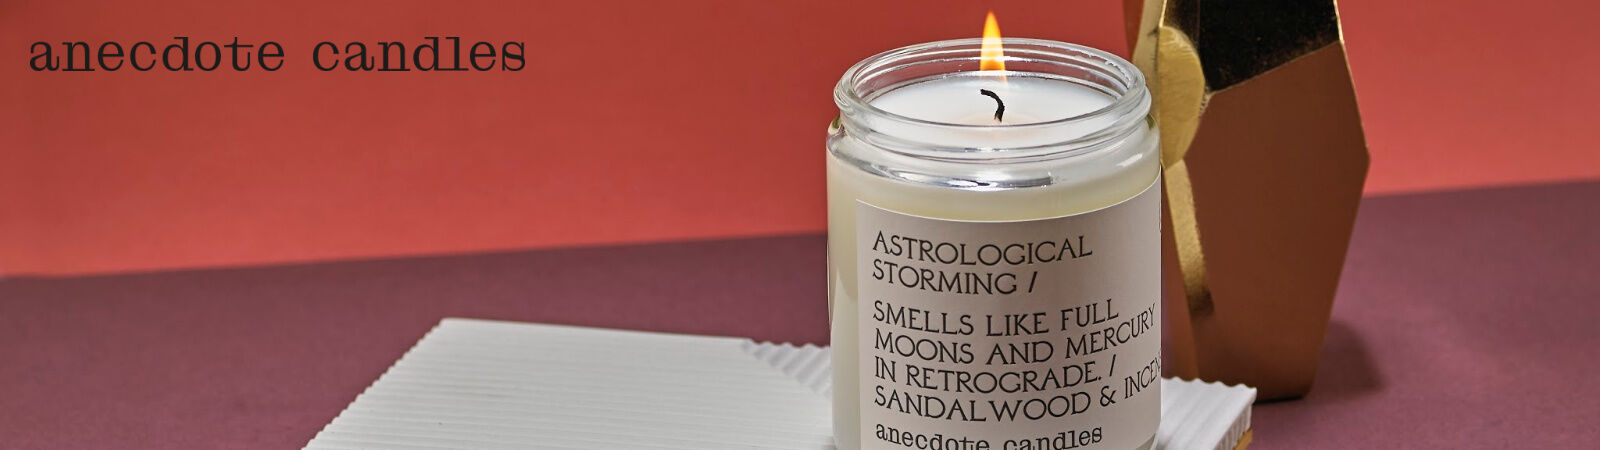 Anecdote Candles, made in the USA and available at Sportique.com